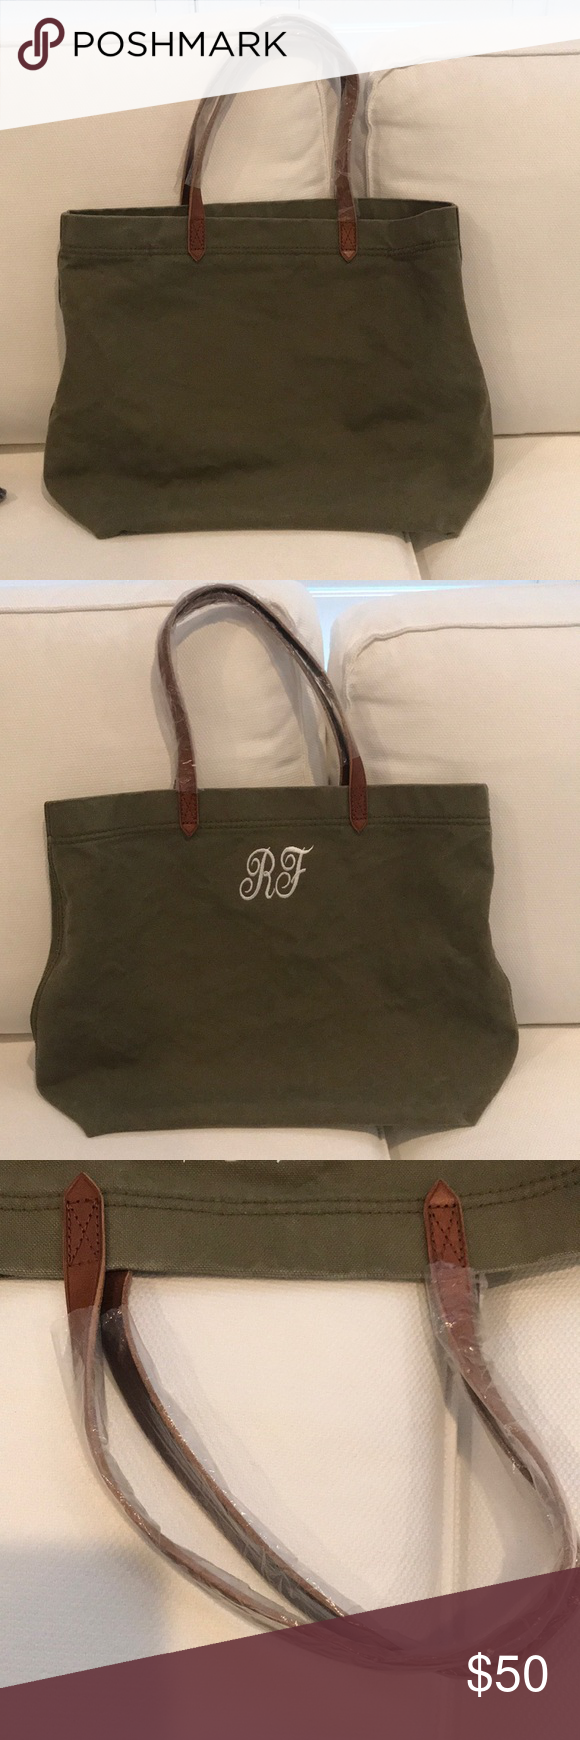 aace2028f Madewell Canvas Transport Tote British Surplus RF This tote is brand new  and never used.